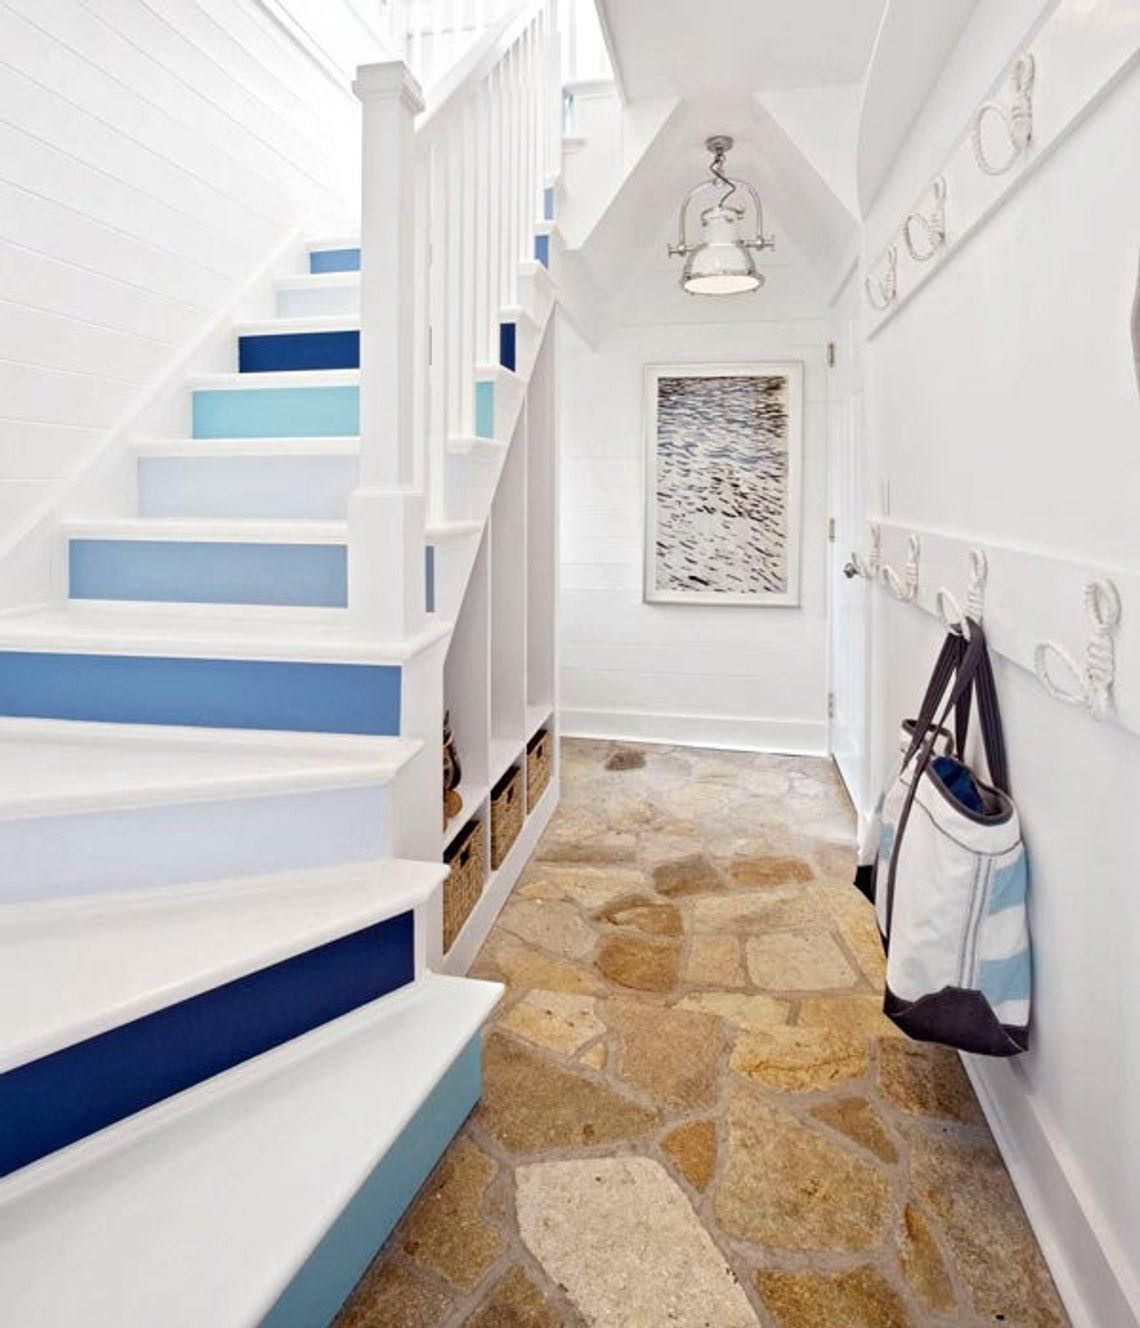 stunning staircase designs to knock your polycotton socks off heart handmade uk also rh pinterest